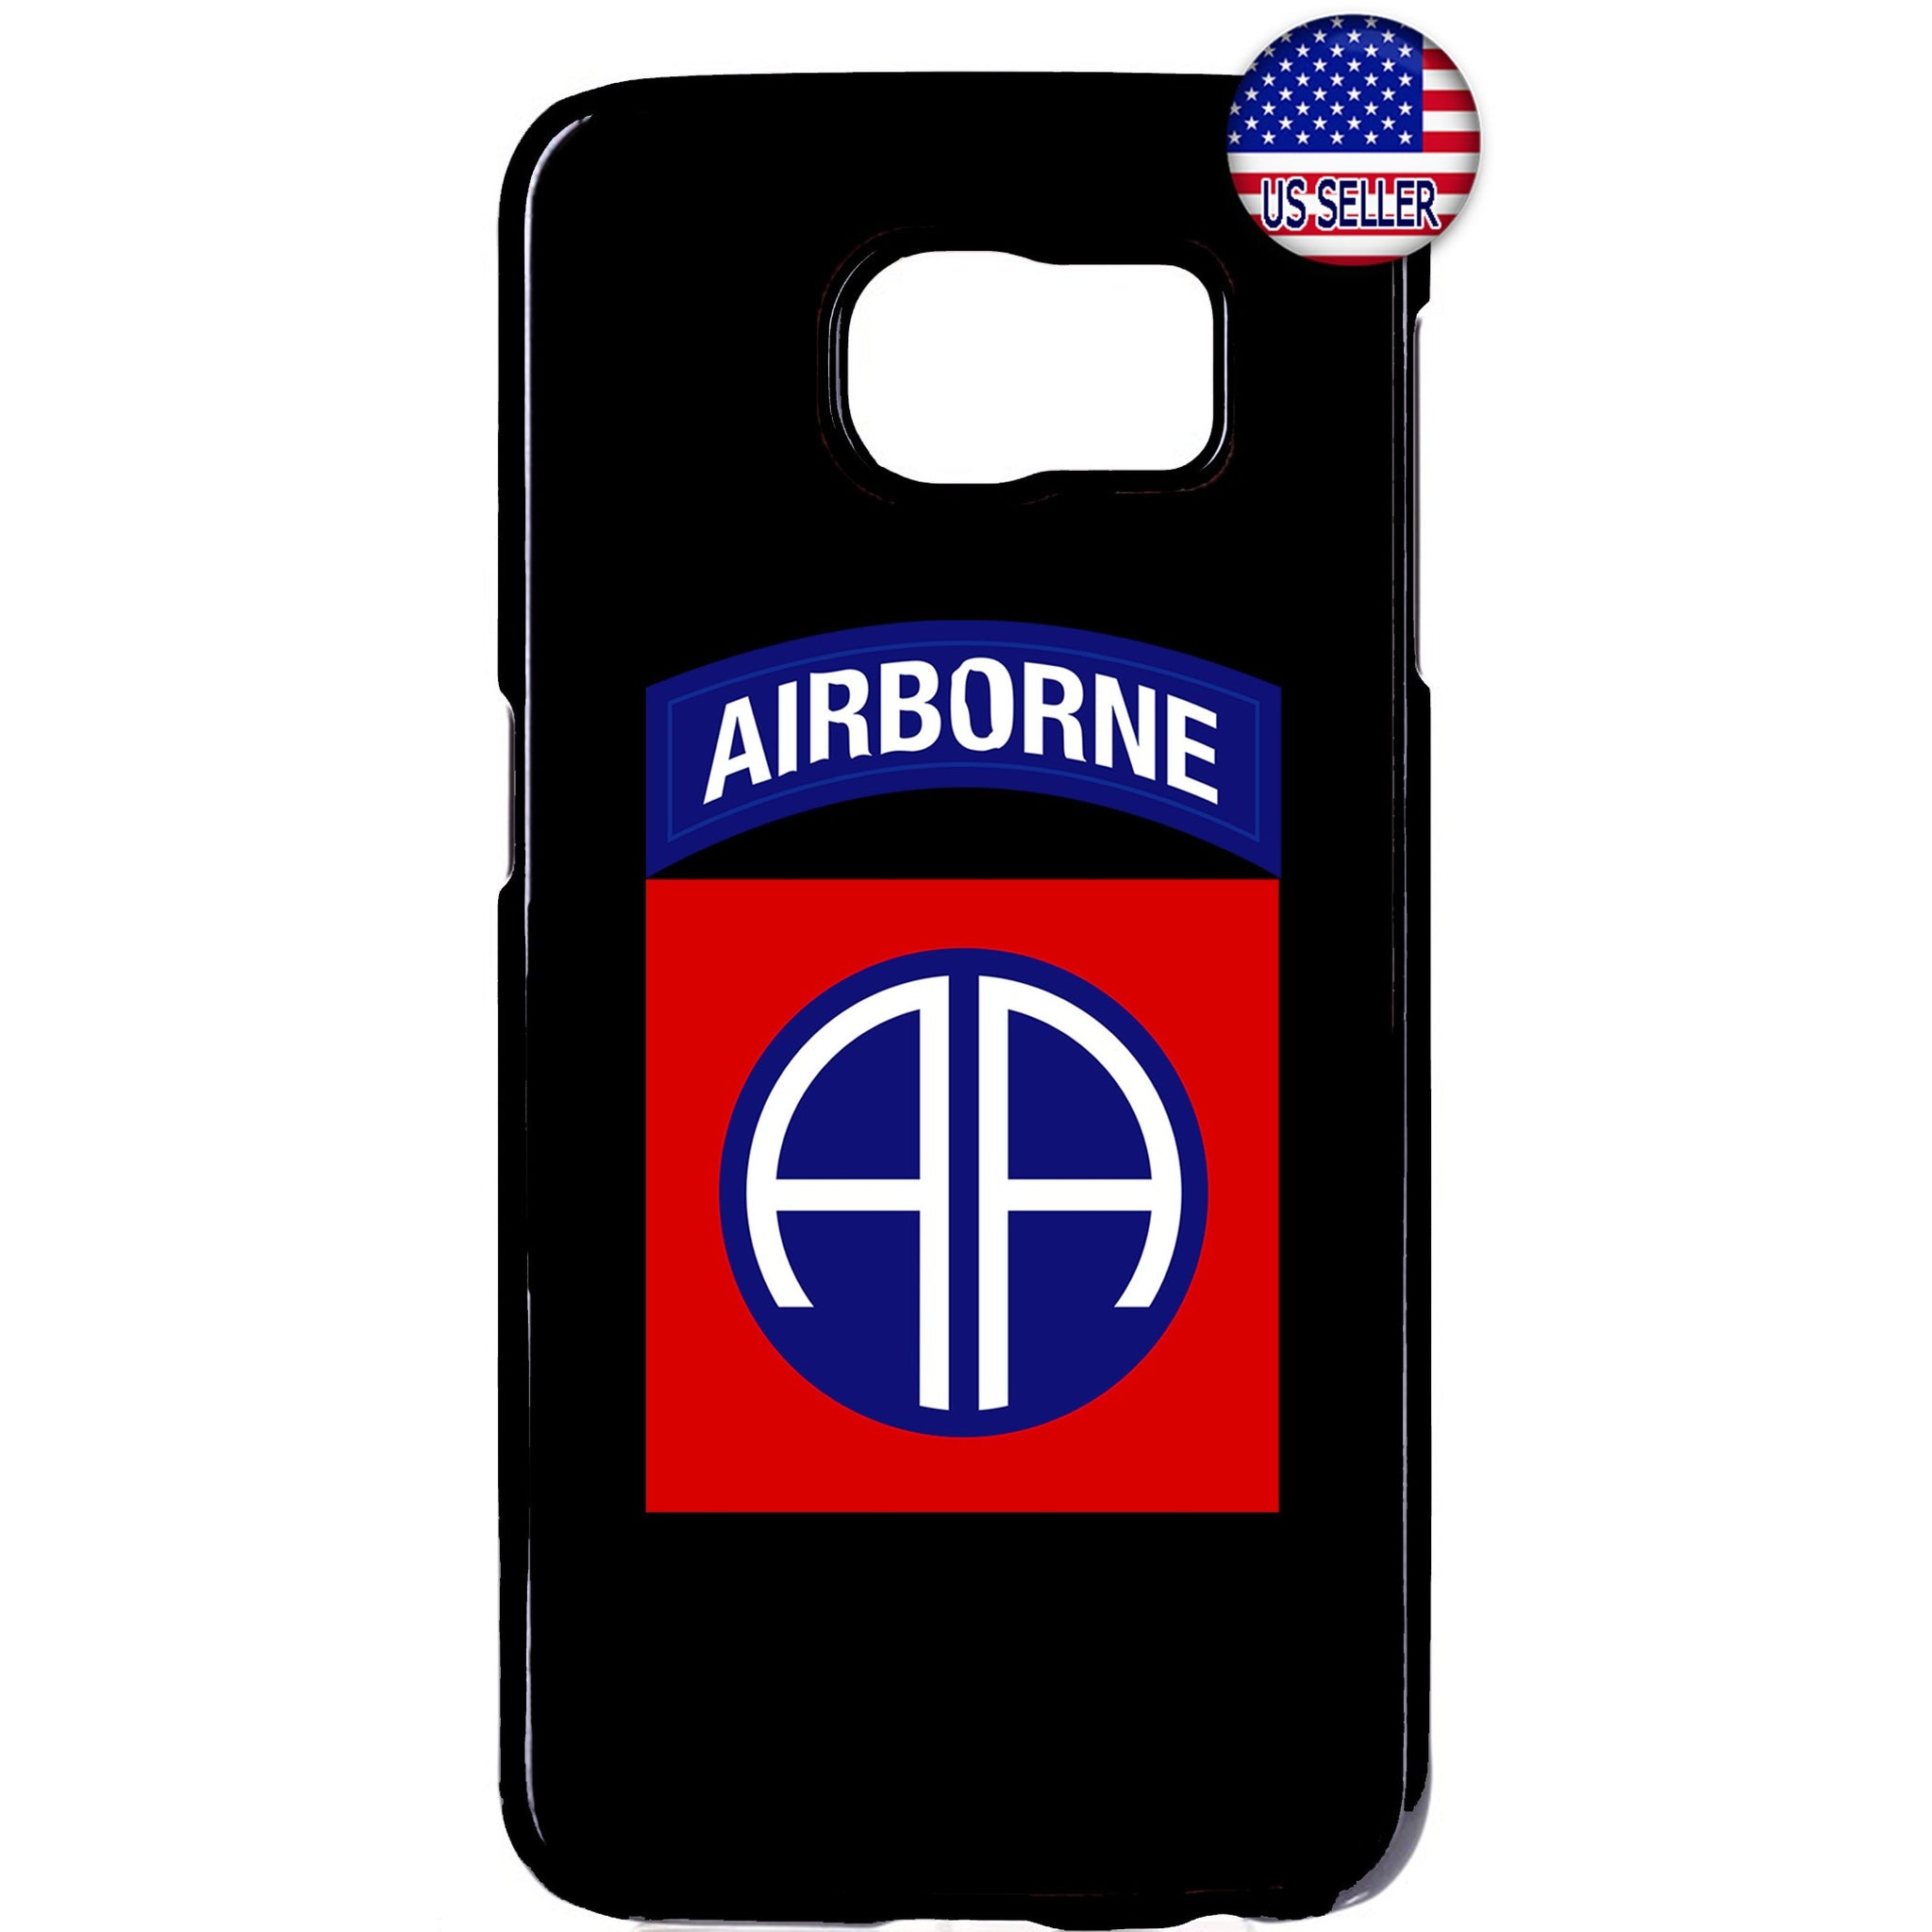 82nd US Airborne Destiny Military Force Rubber Case Cover For Samsung Galaxy